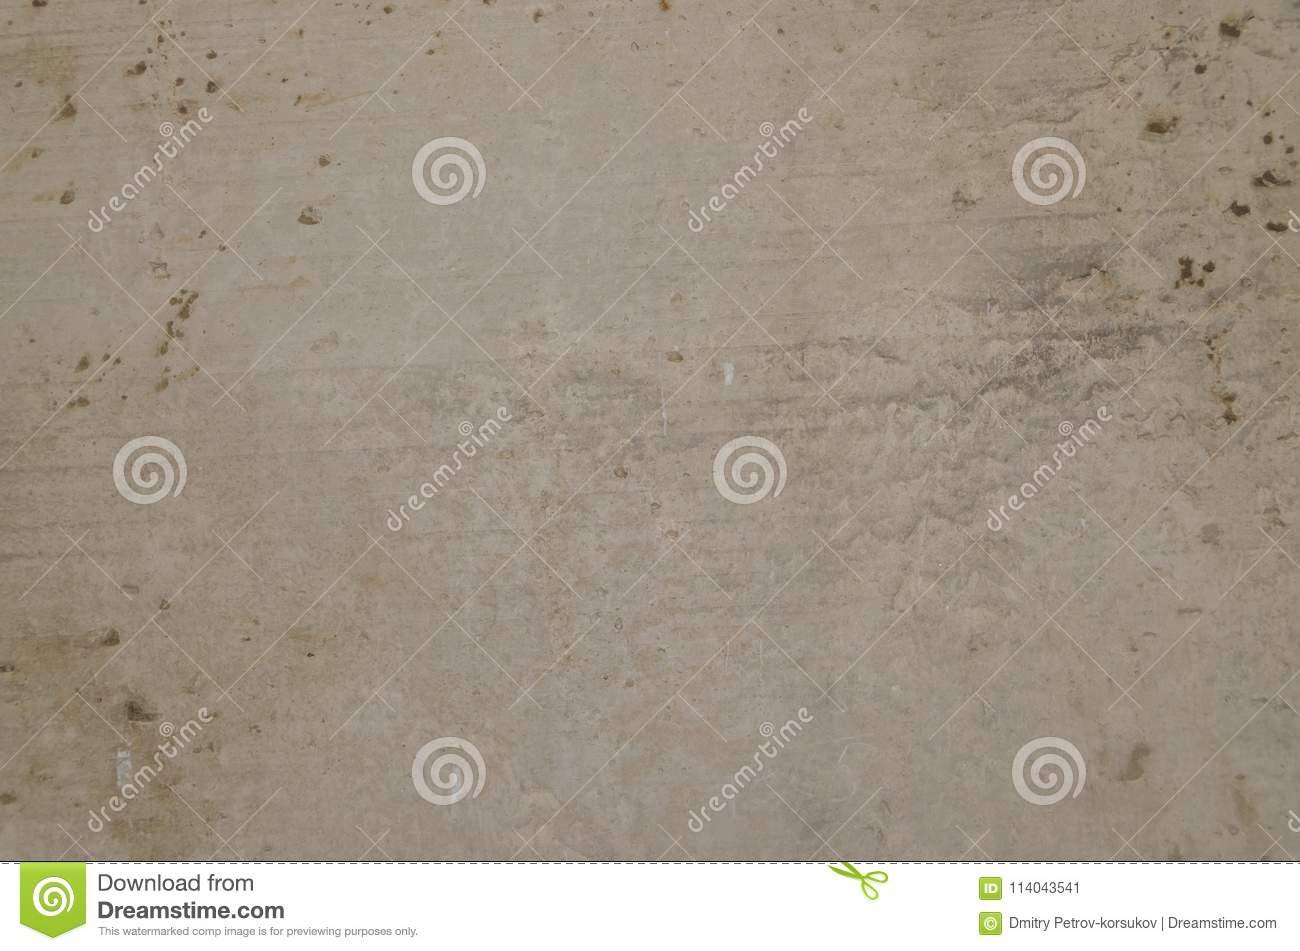 Wall putty texture